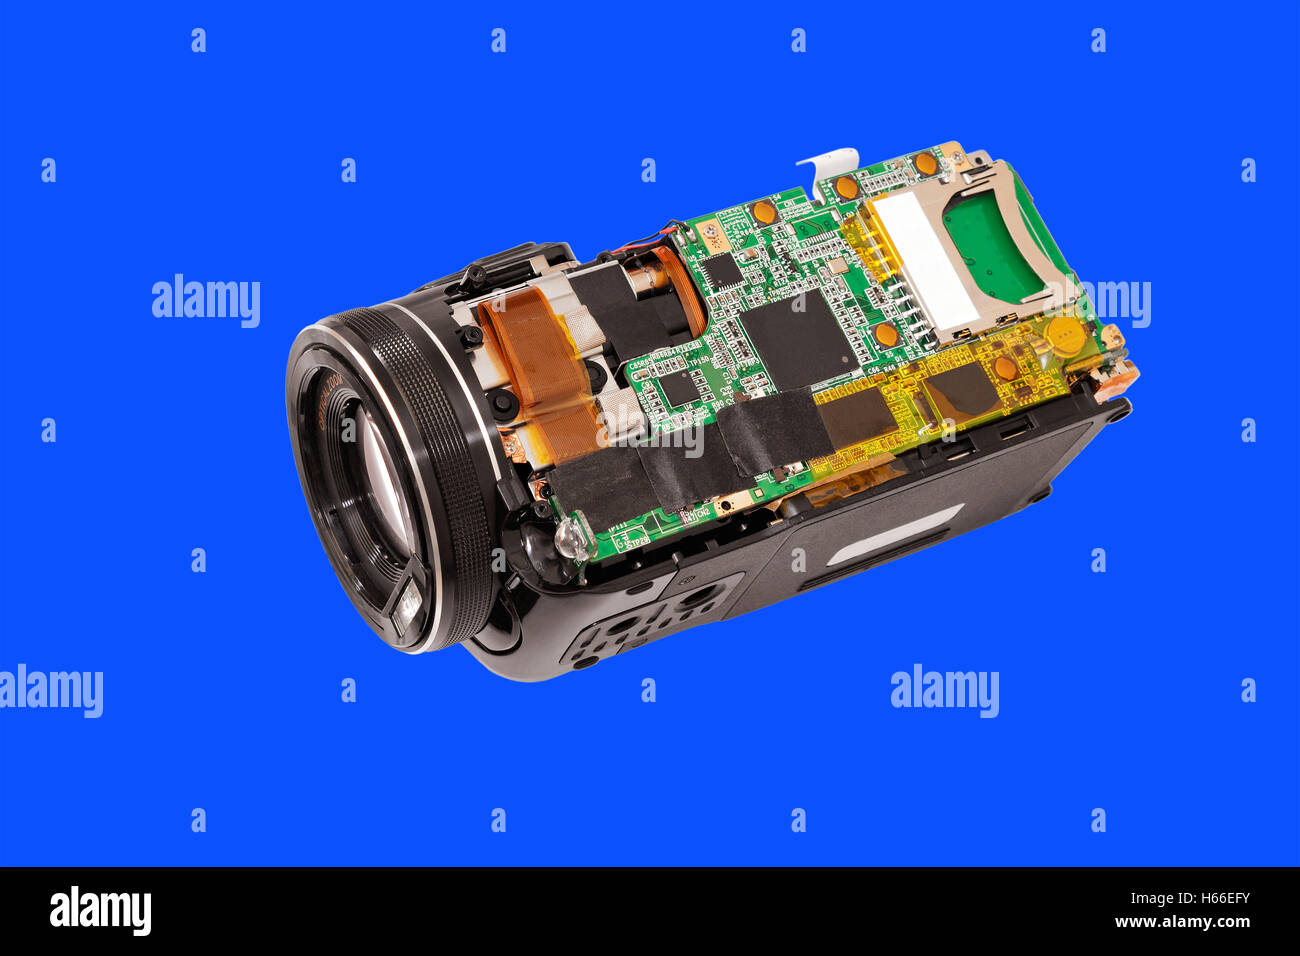 Disassembled compact camcorder. Close-up. Isolated on blue background. - Stock Image